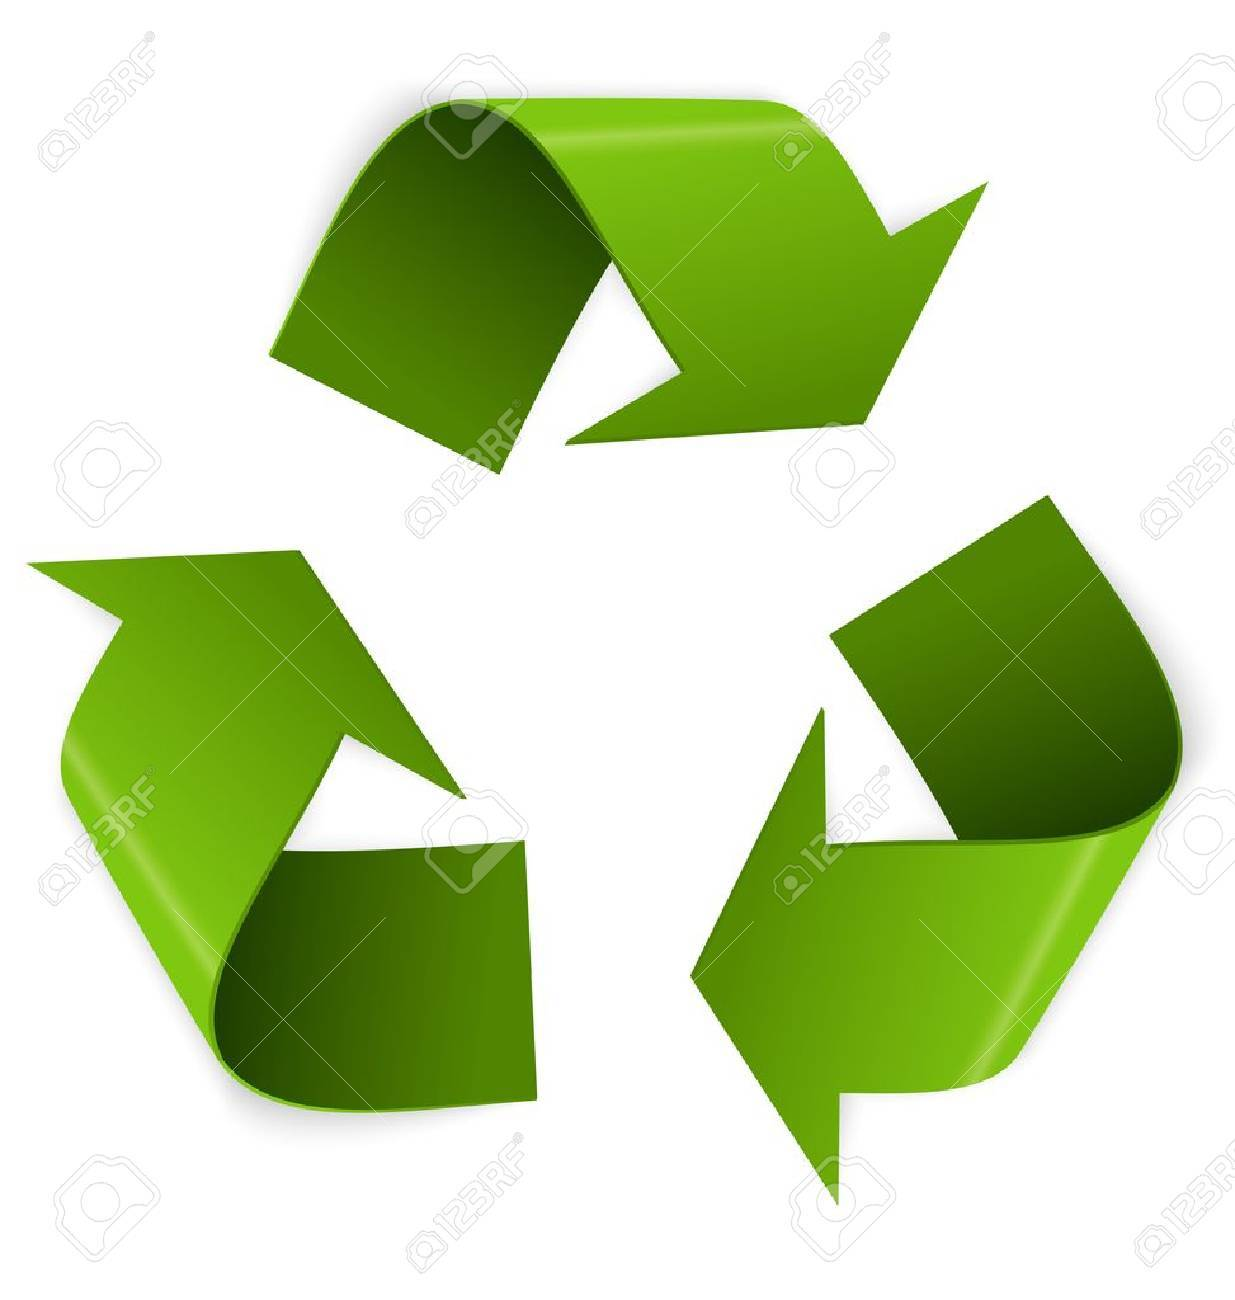 Vector illustration of 3d recycling symbol isolated on white vector illustration of 3d recycling symbol isolated on white stock vector 21030626 biocorpaavc Gallery